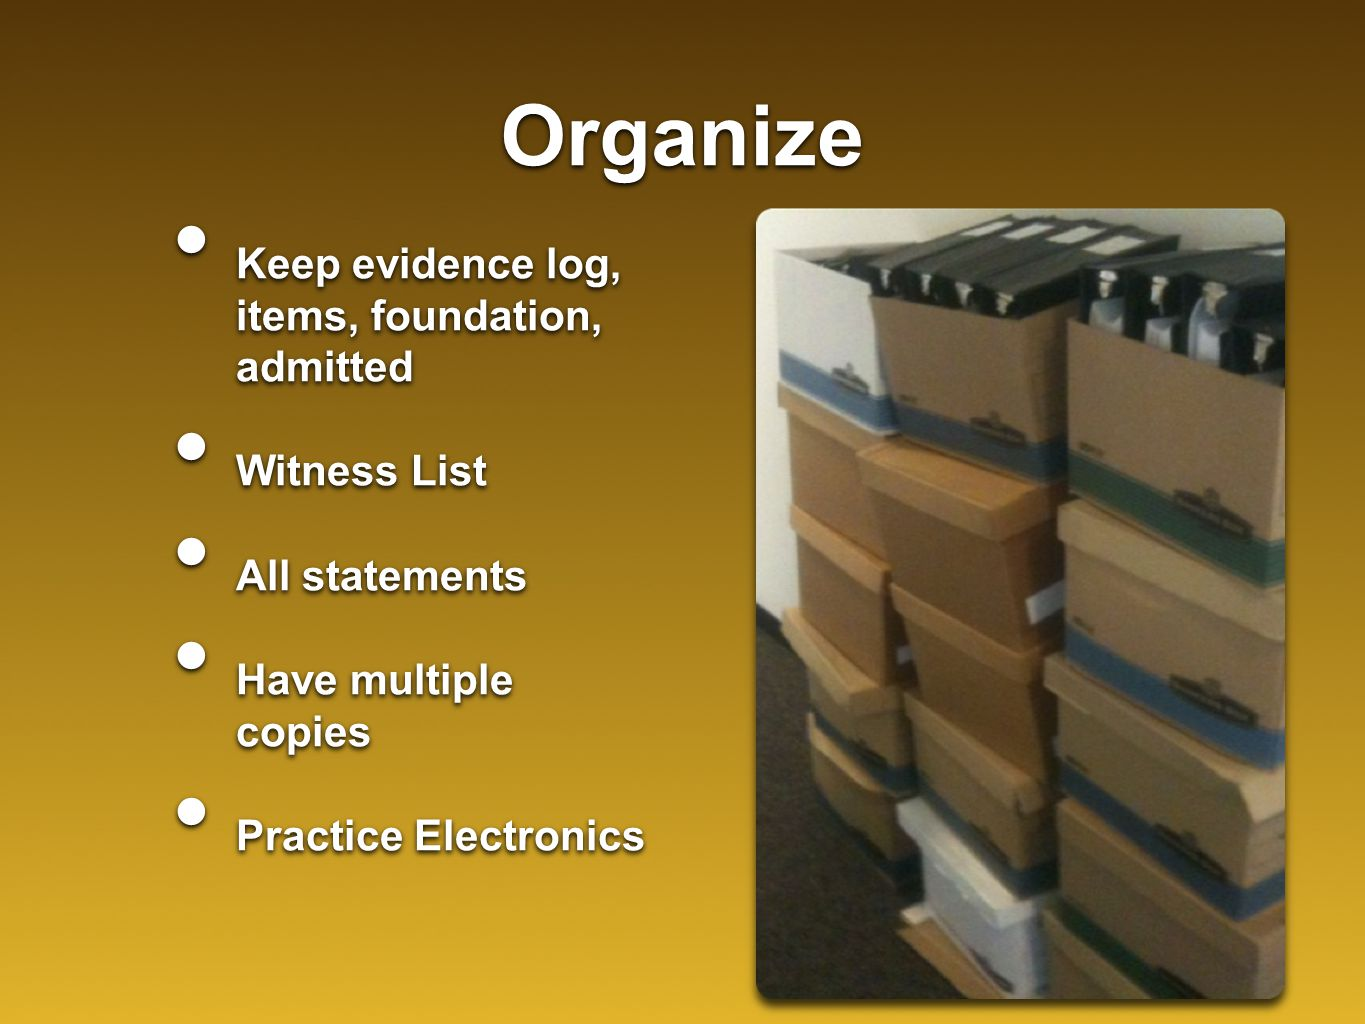 Organize Keep evidence log, items, foundation, admitted Witness List All statements Have multiple copies Practice Electronics Keep evidence log, items